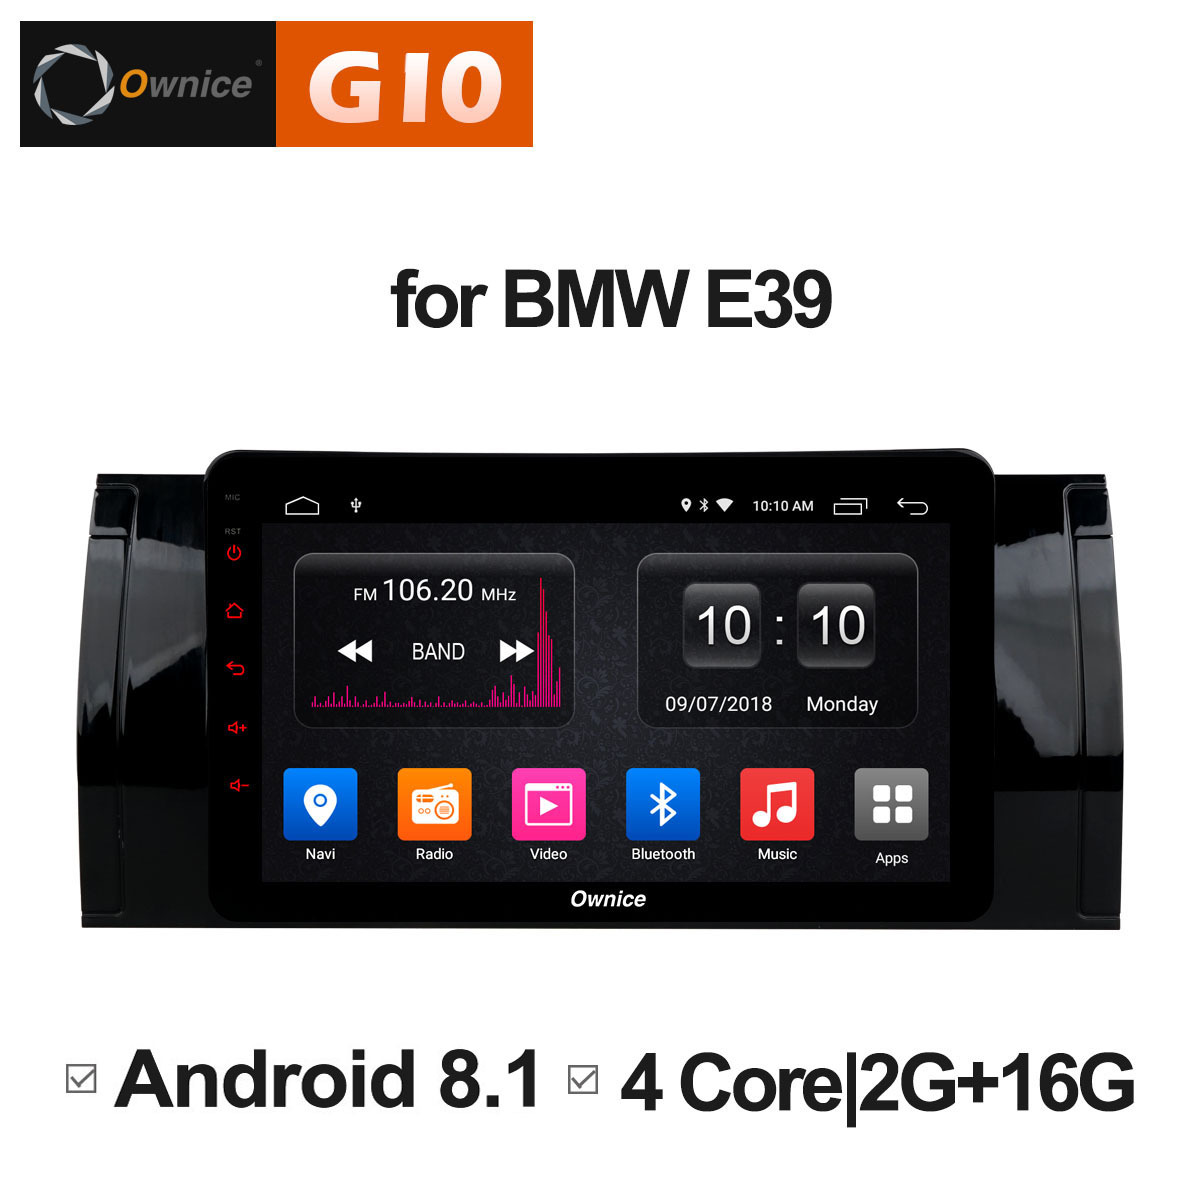 Clearance Ownice C500+ G10 Octa Core android 8.1 Car DVD player 32G ROM  for bmw E39 GPS Radio RDS GPS Navi stereo player 2G ram 4G LTE 1